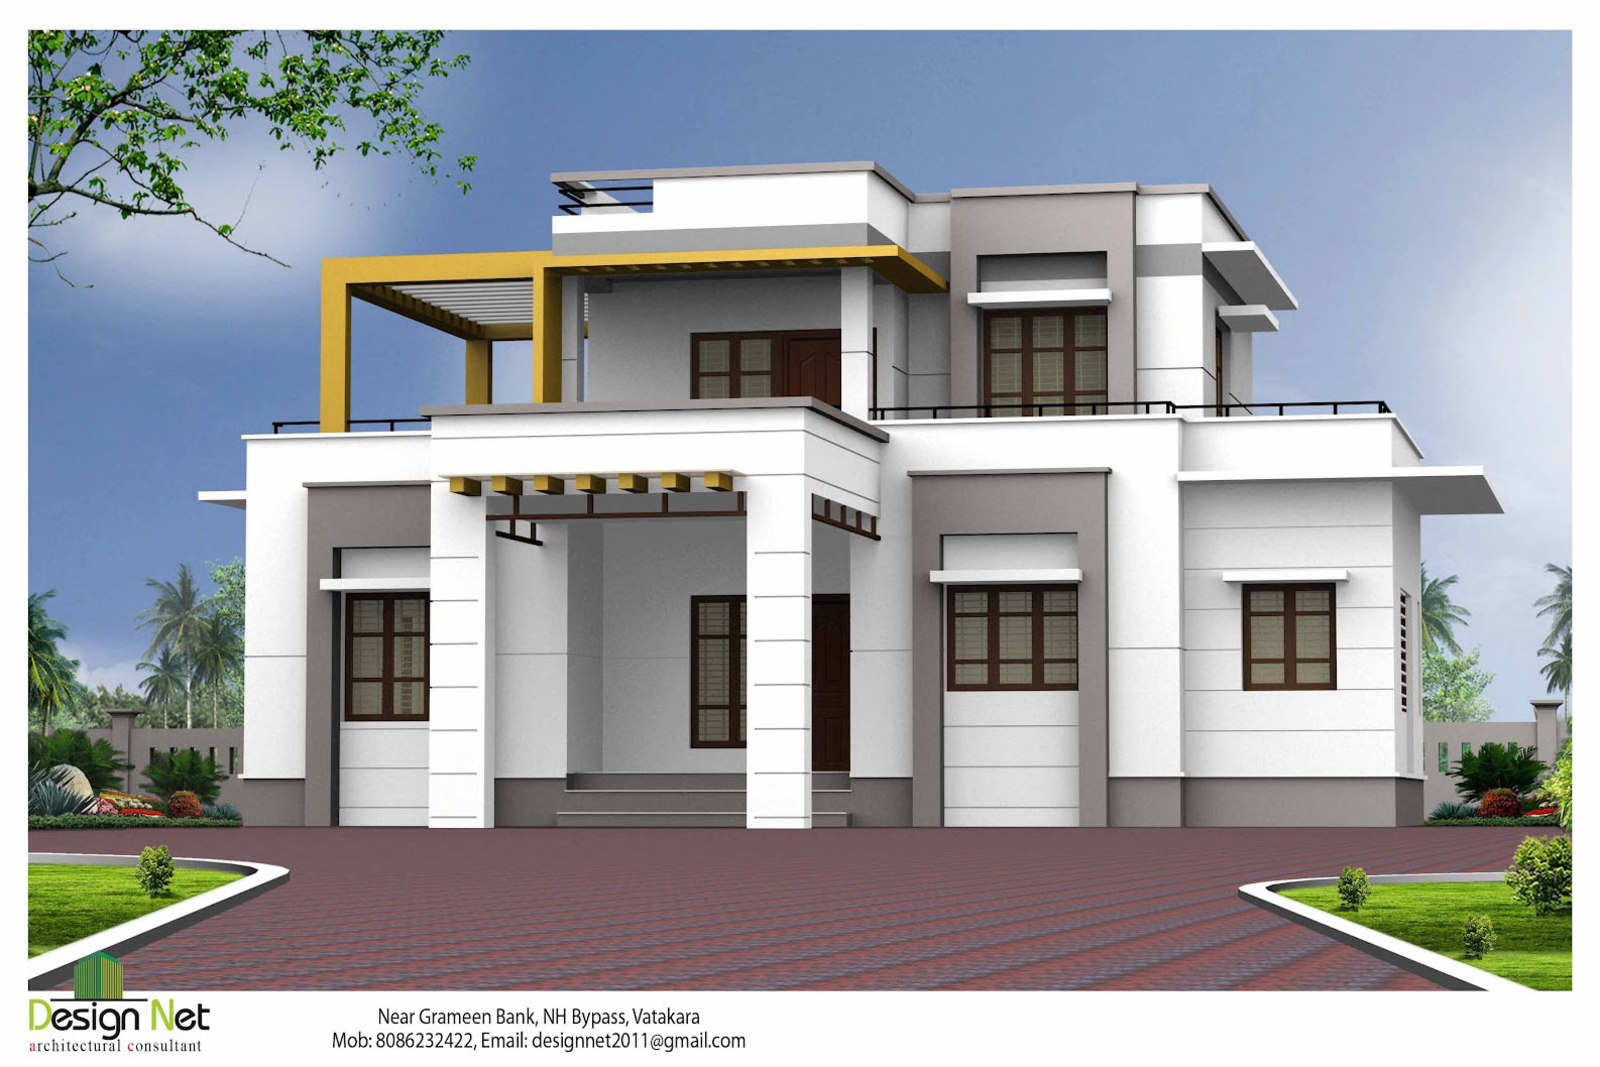 Image gallery outside house designs for External design house